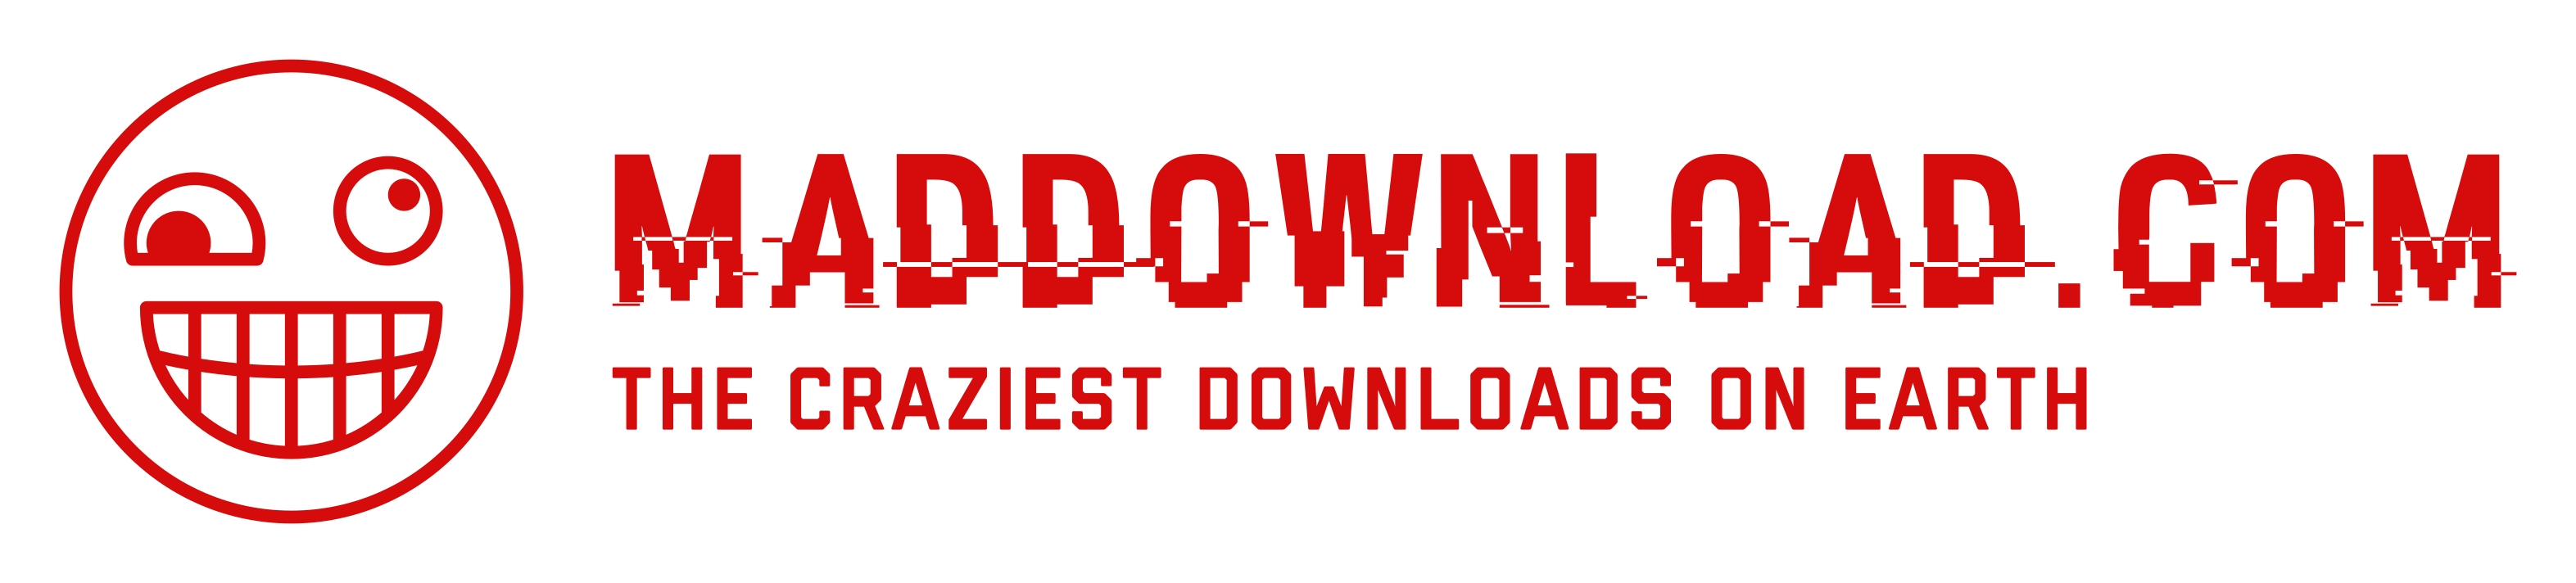 Free Music & Video Downloader::Download mp3 files for free - the sz